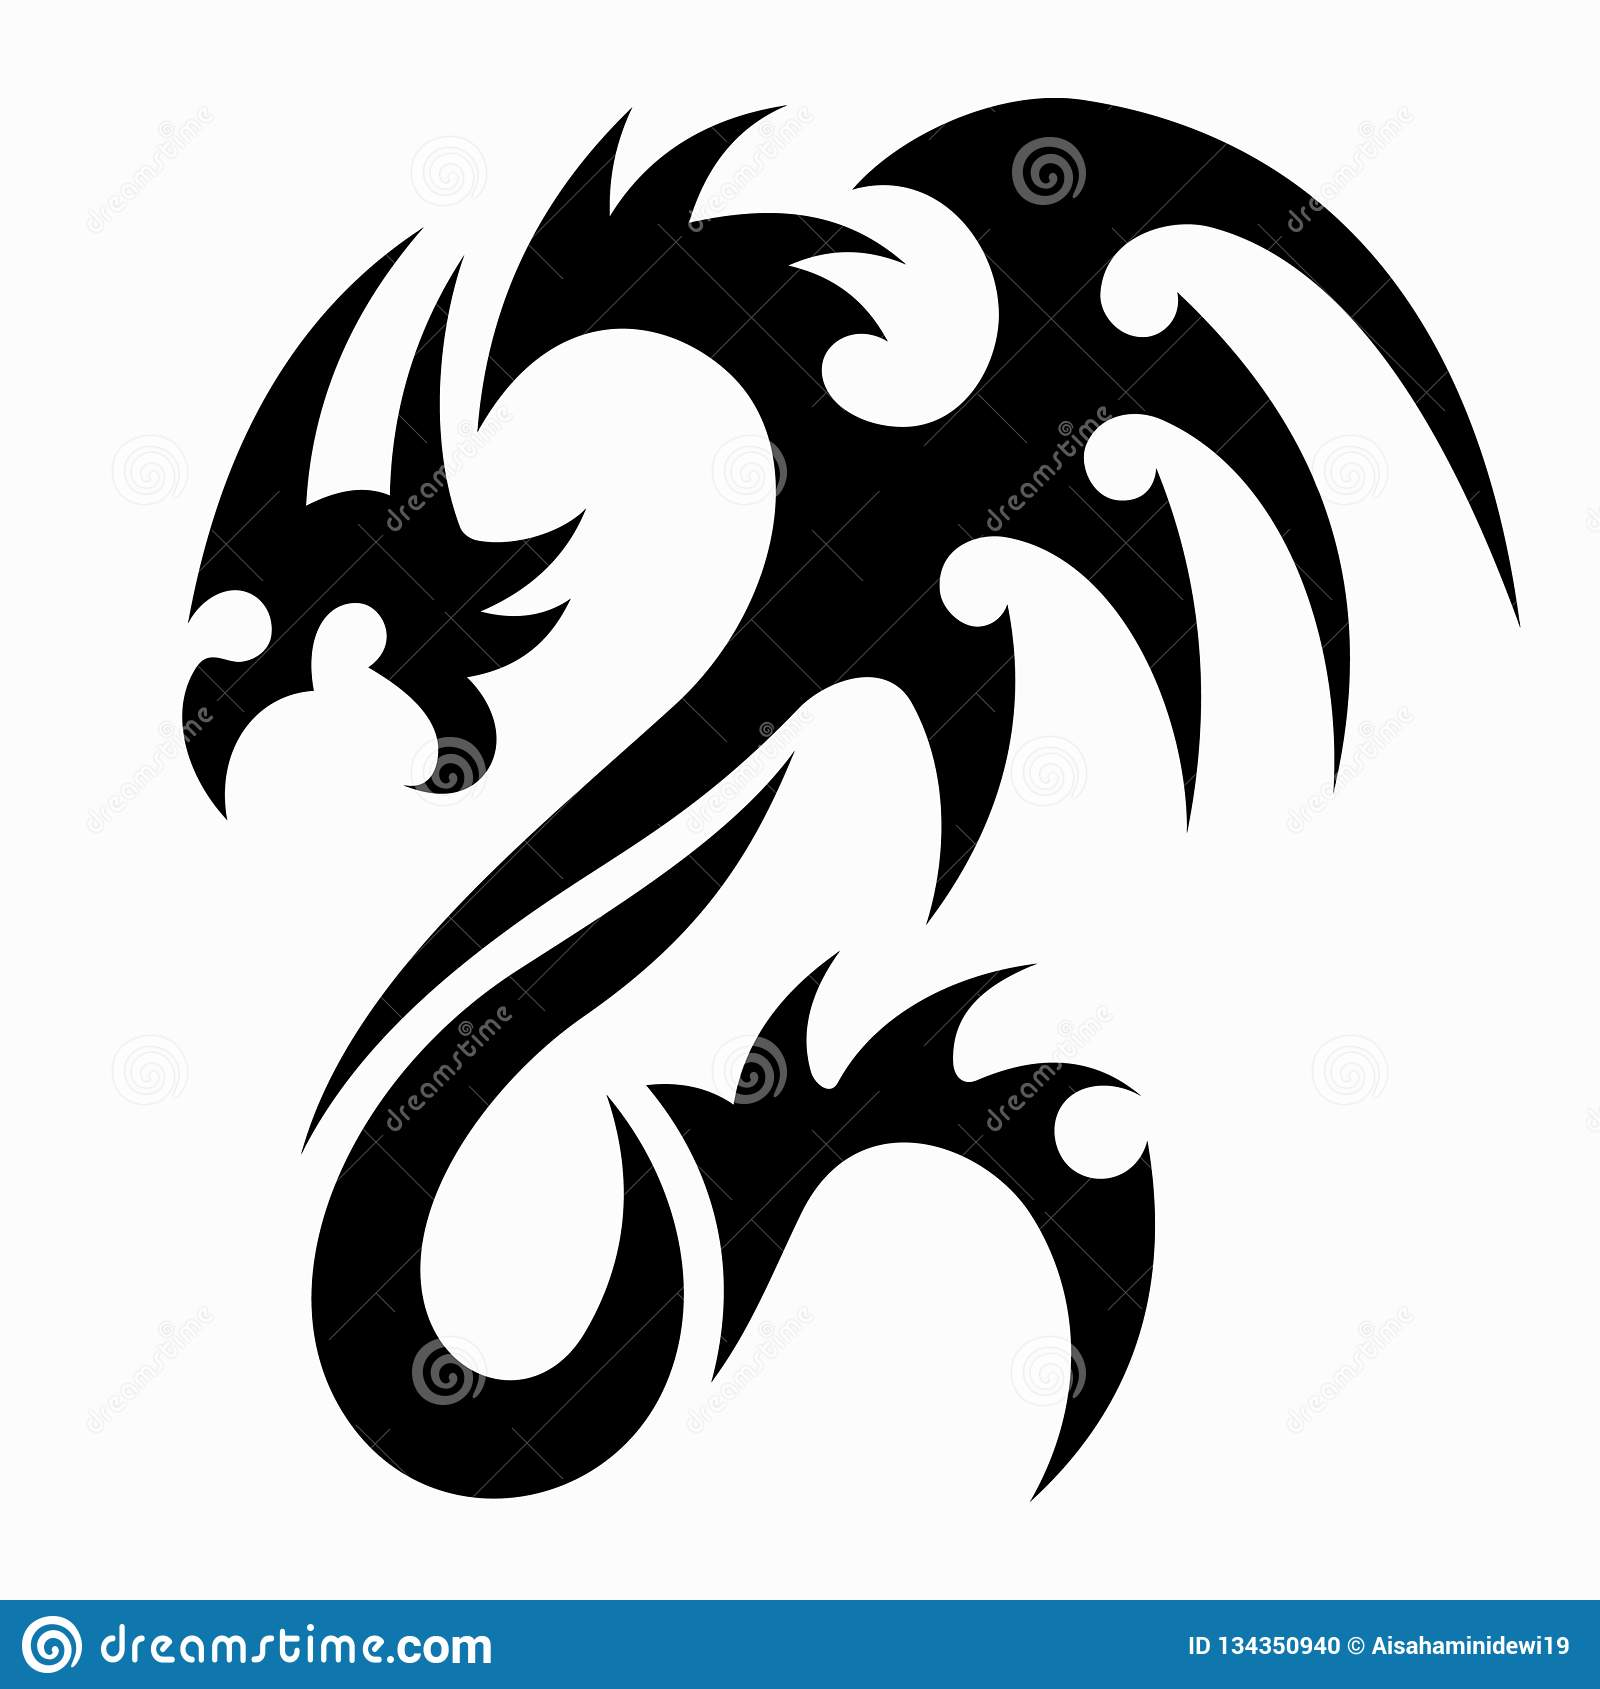 ae0b17a4c171d Dragon vector illustration for tattoo designs, logos, icons, symbols,  t-shirt designs and other design equipment